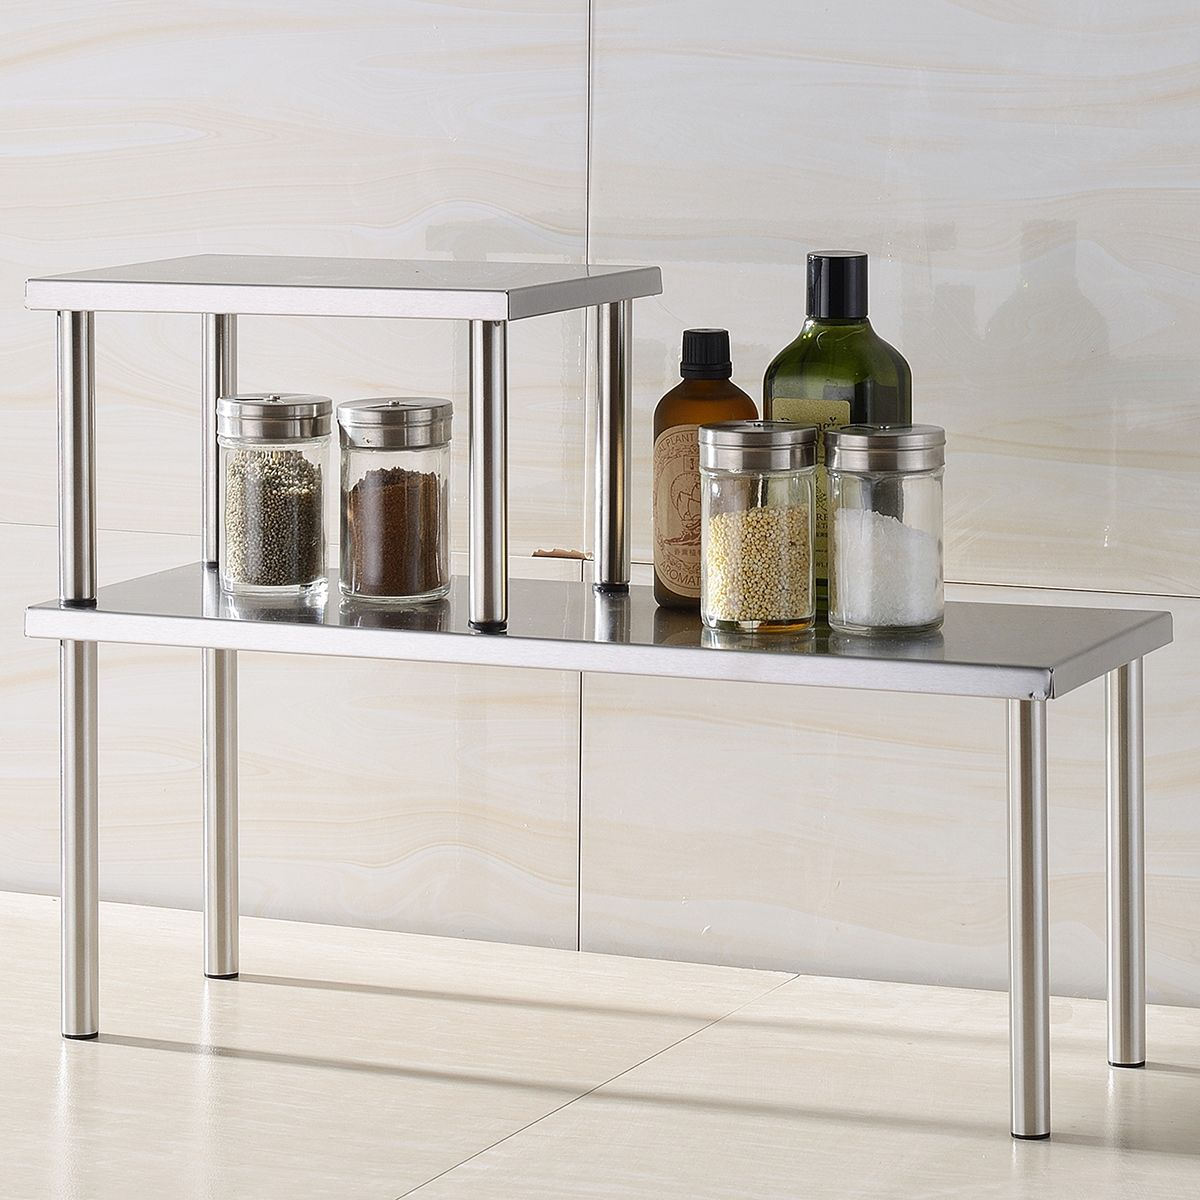 What\'s in Box: Stainless steel Corner Shelf 2 Tier, Stainless Steel ...